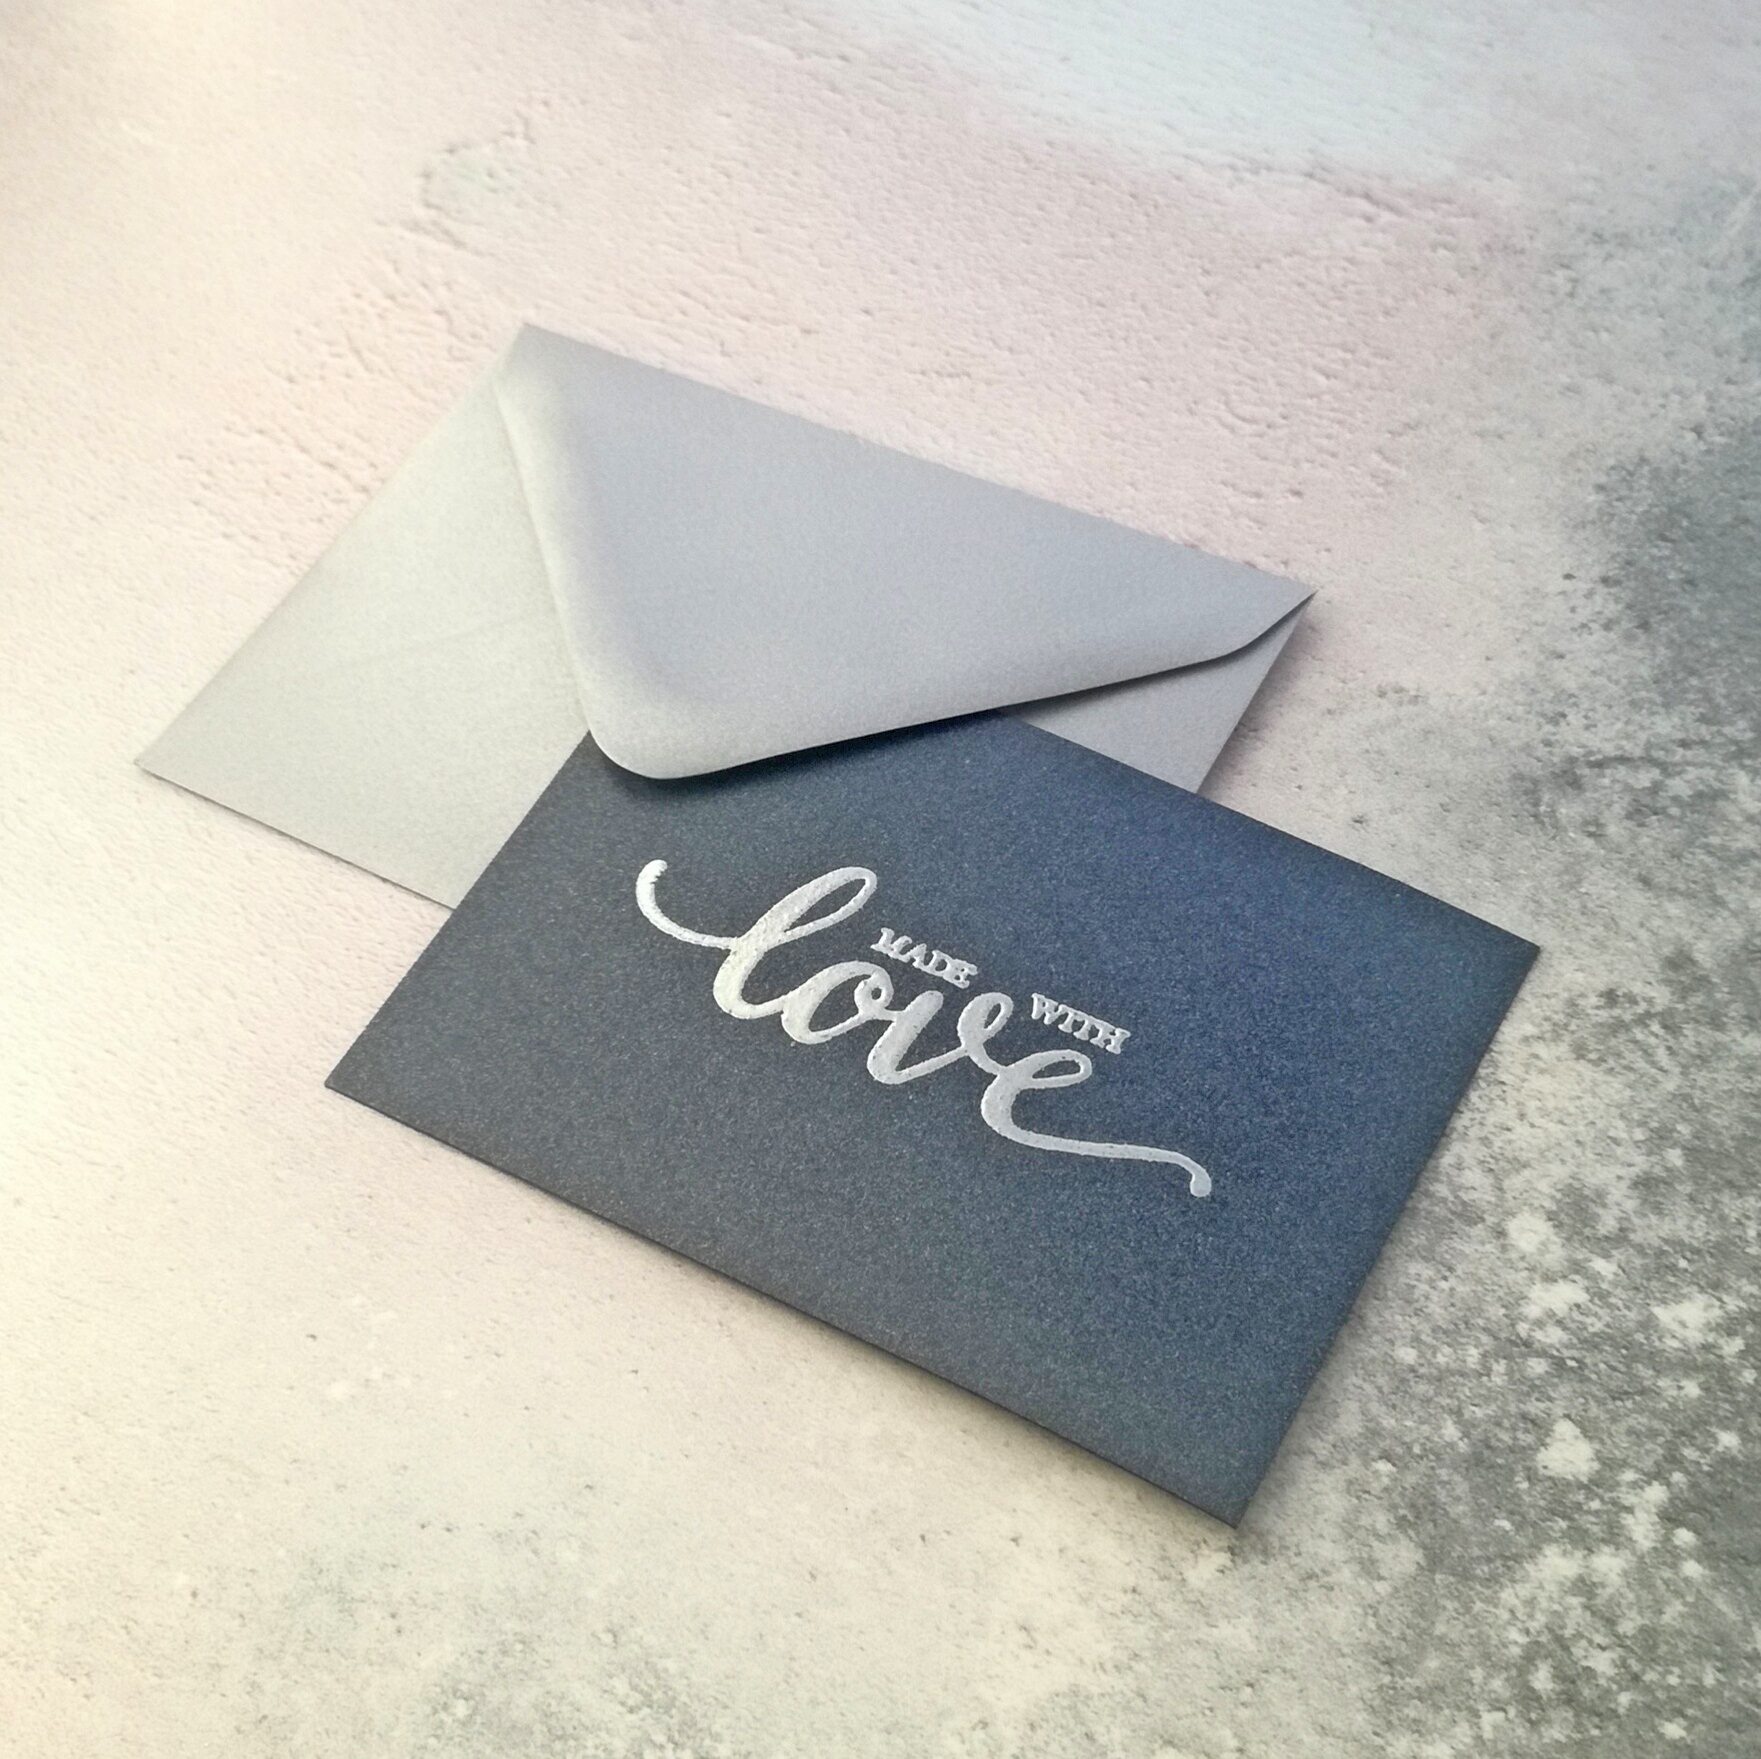 Add a handmade gift tag to your order with a short message to your loved one.